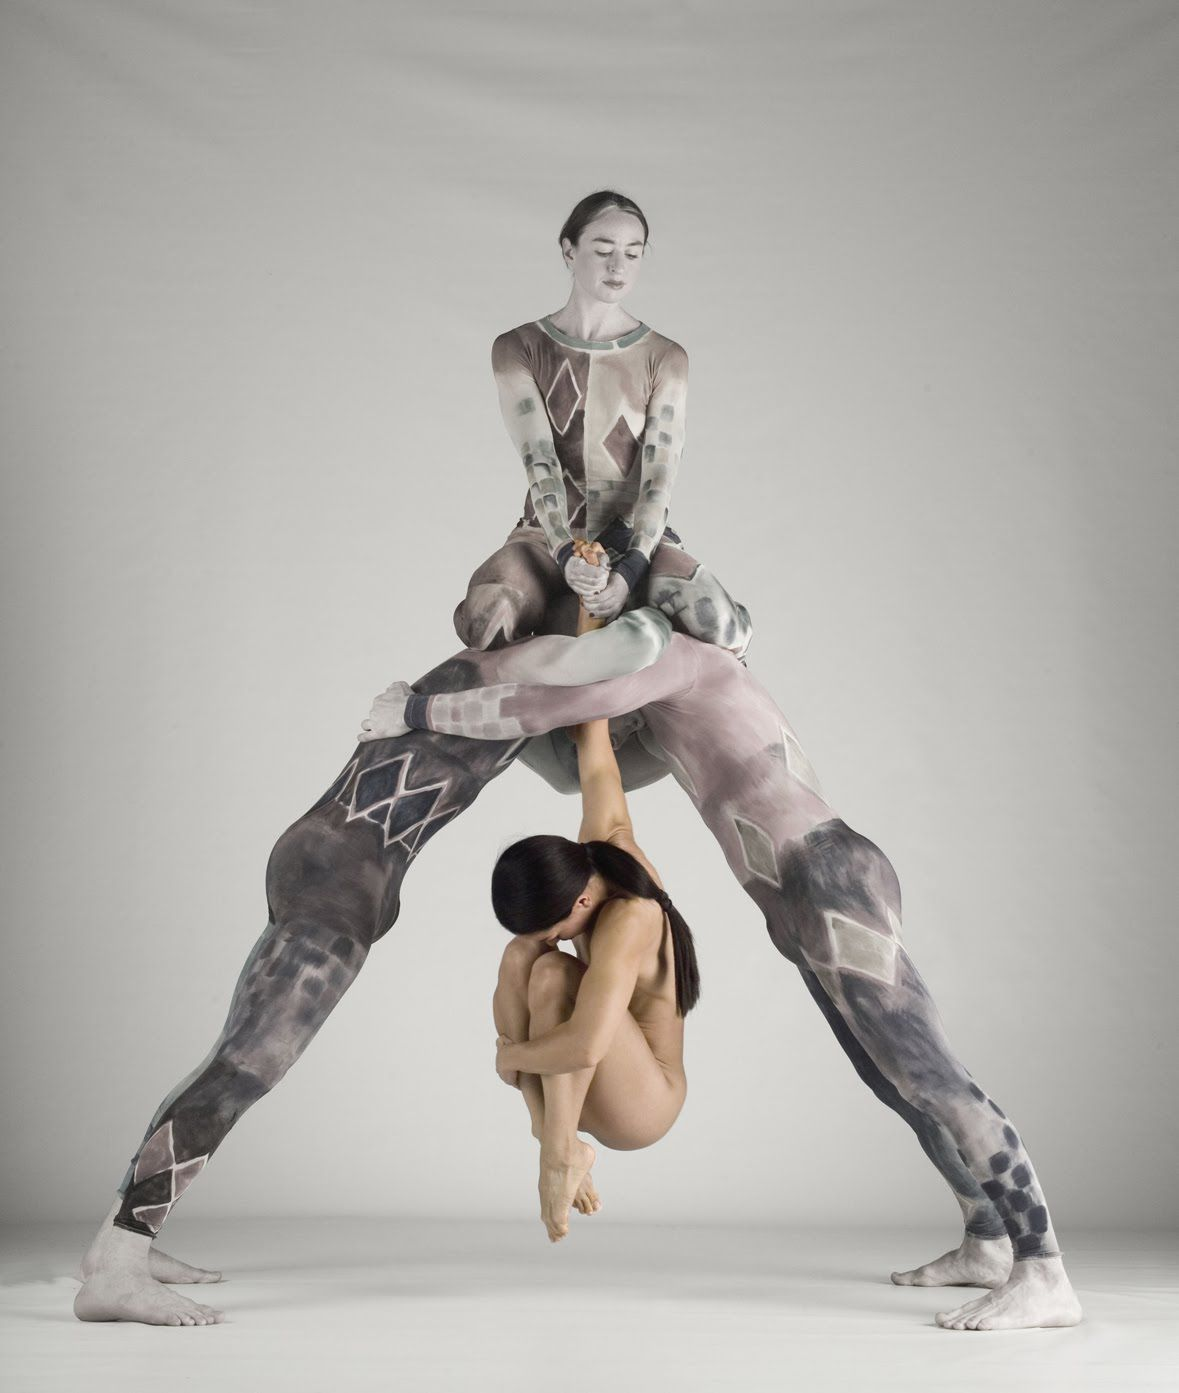 A Tribute To Pilobolus Dance Company Contemporary Art